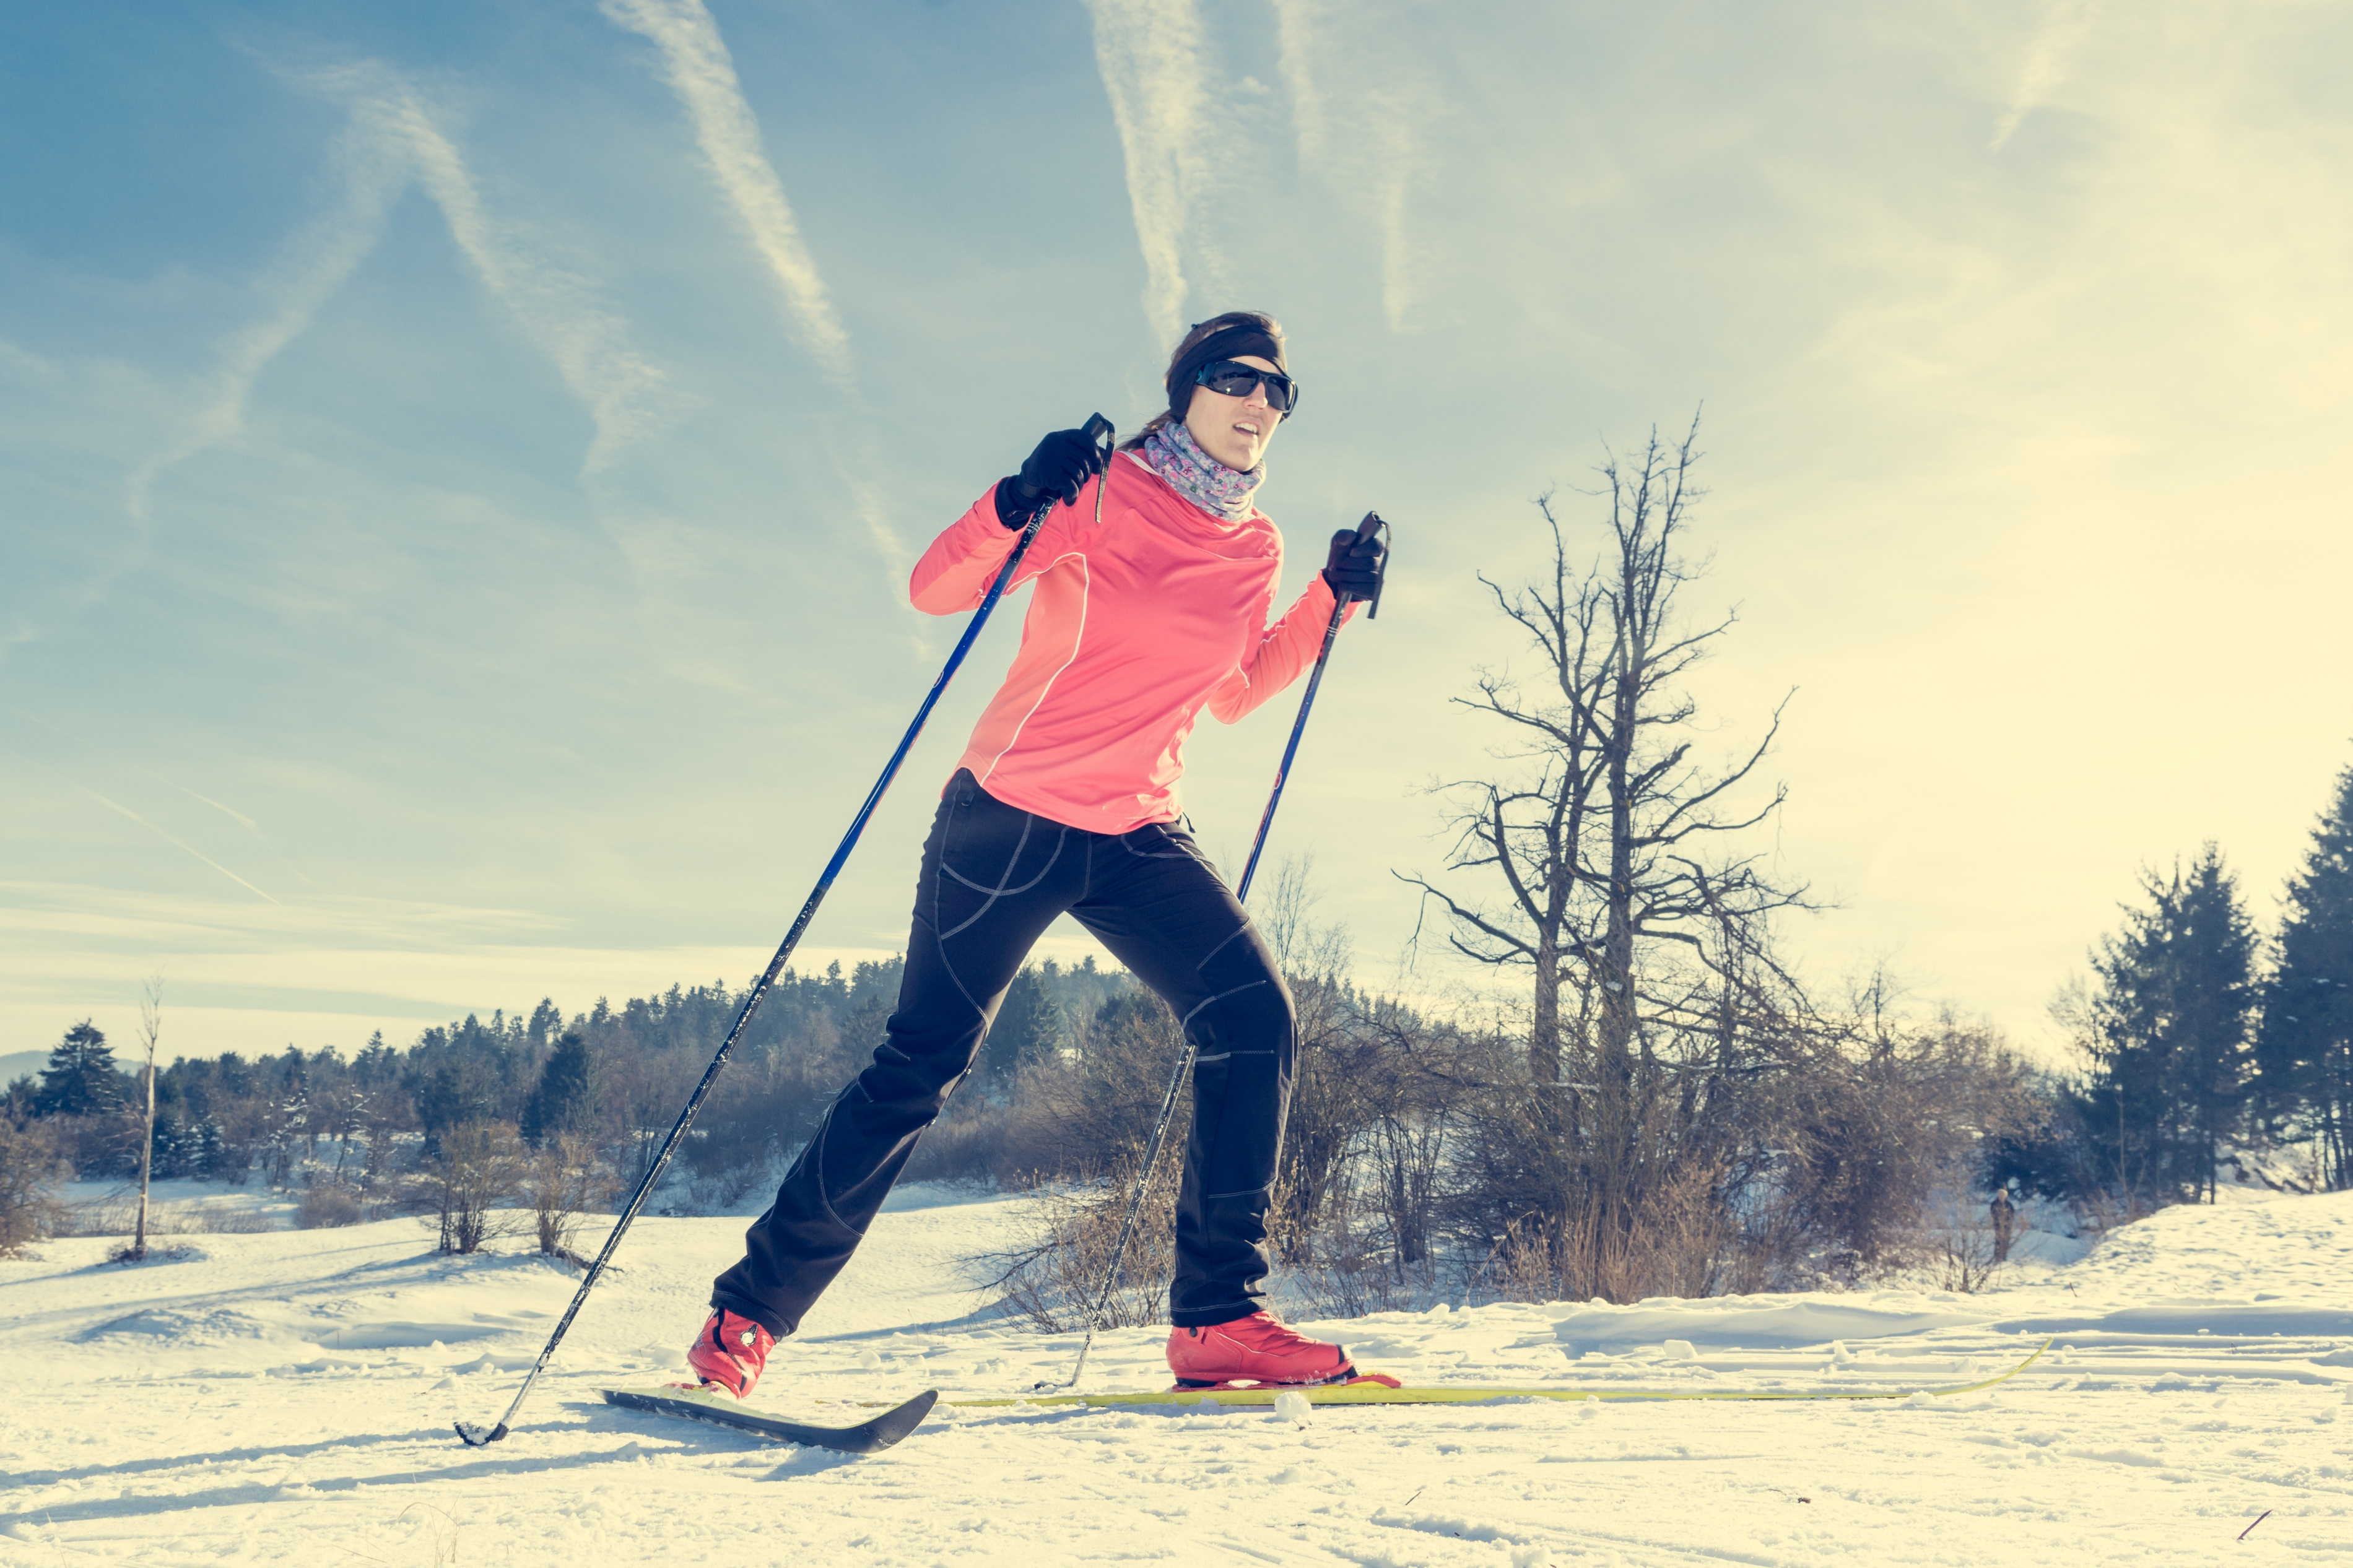 Woman cross country skiing on a yellow skis